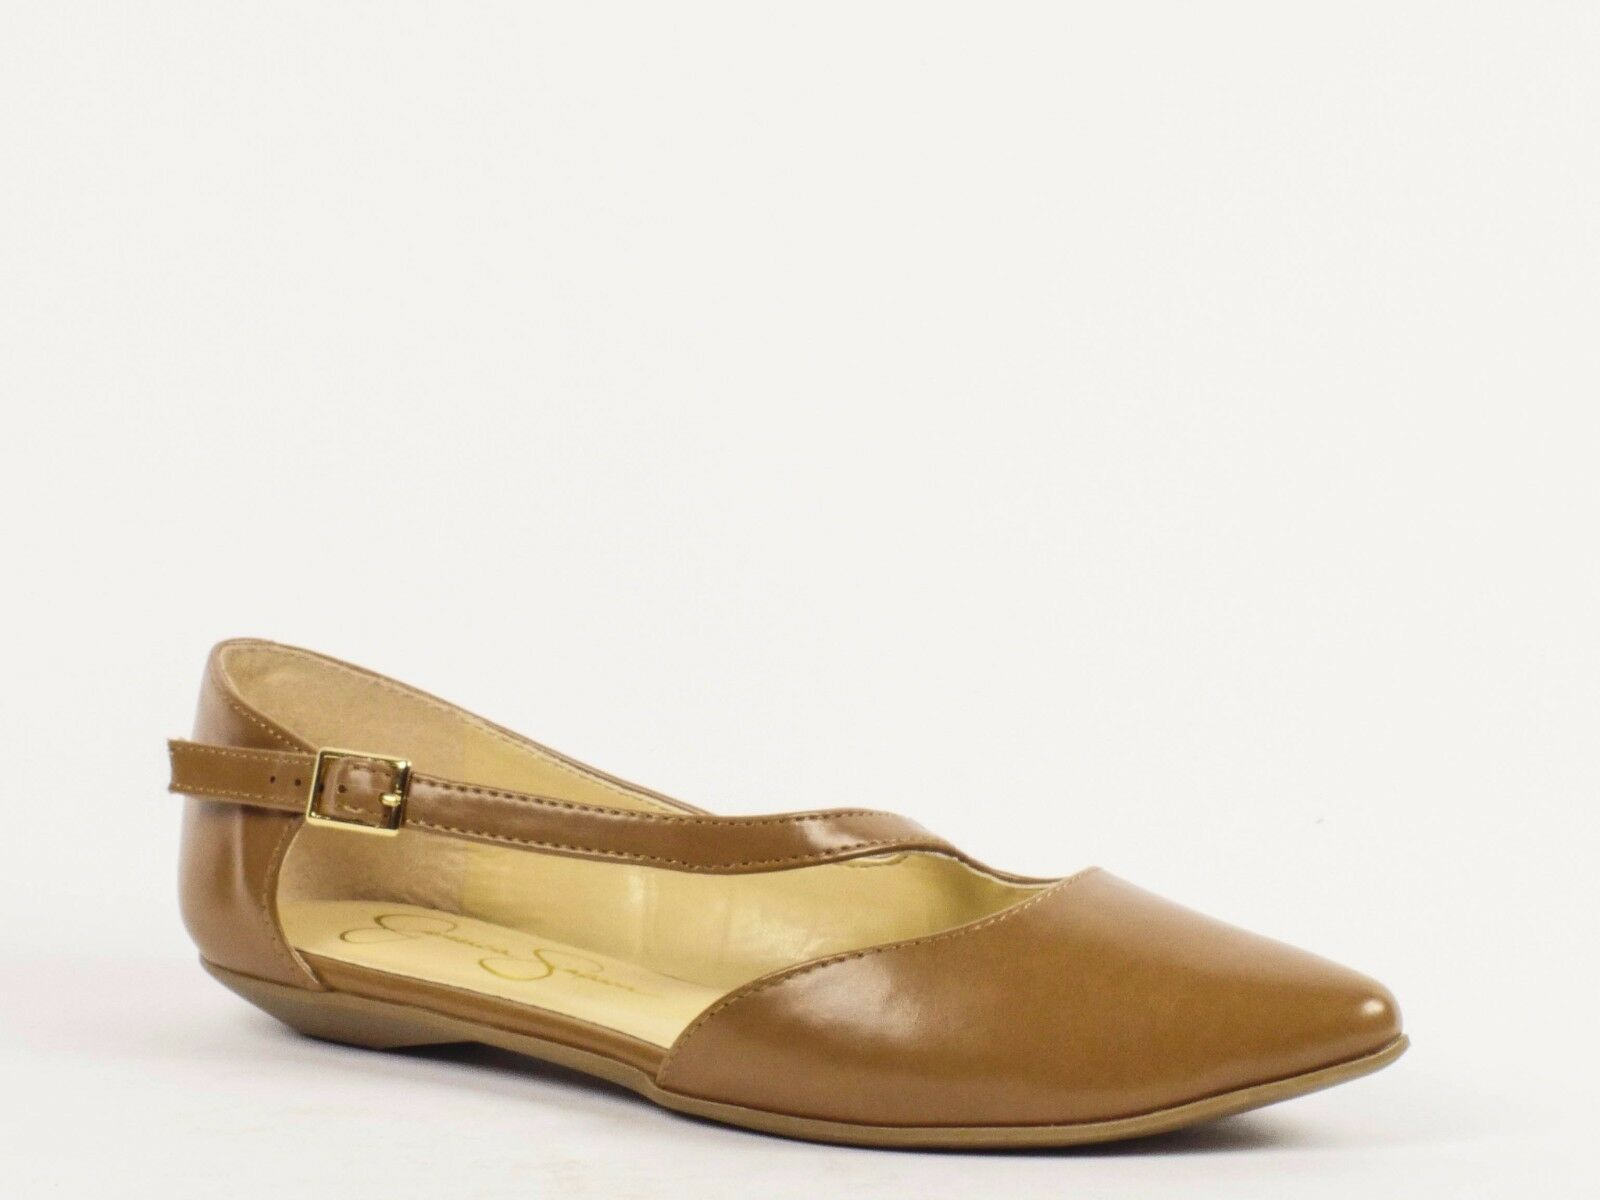 Jessica Simpson Thaye Flats Tan Leather Pointed Toe Dimensione 6.5 nuovo  79